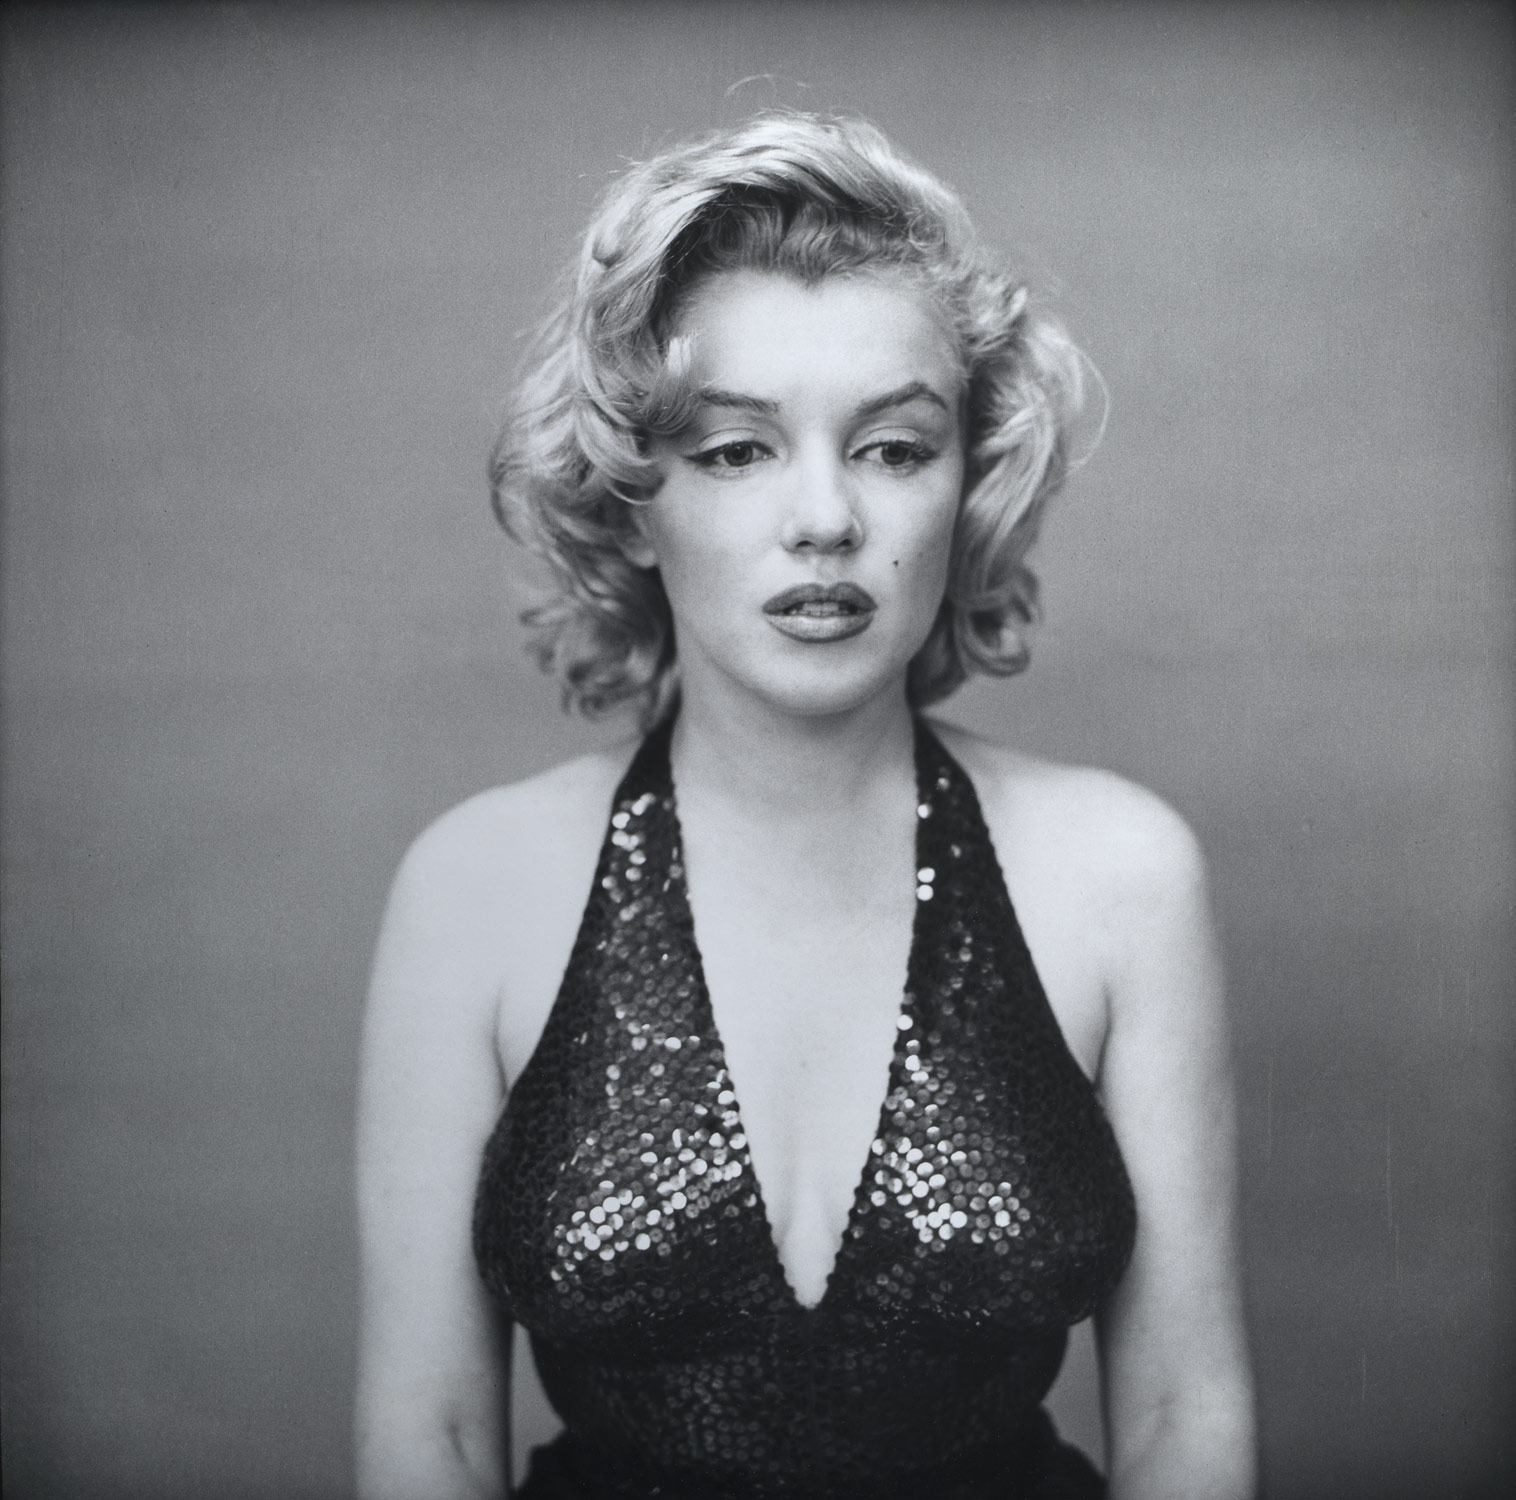 Working Title/Artist: Avedon, Marilyn Monroe Department: Photographs Culture/Period/Location:  HB/TOA Date Code:  Working Date:  photography by mma, DP166998.tif  touched by film and media (jnc) 9_29_08